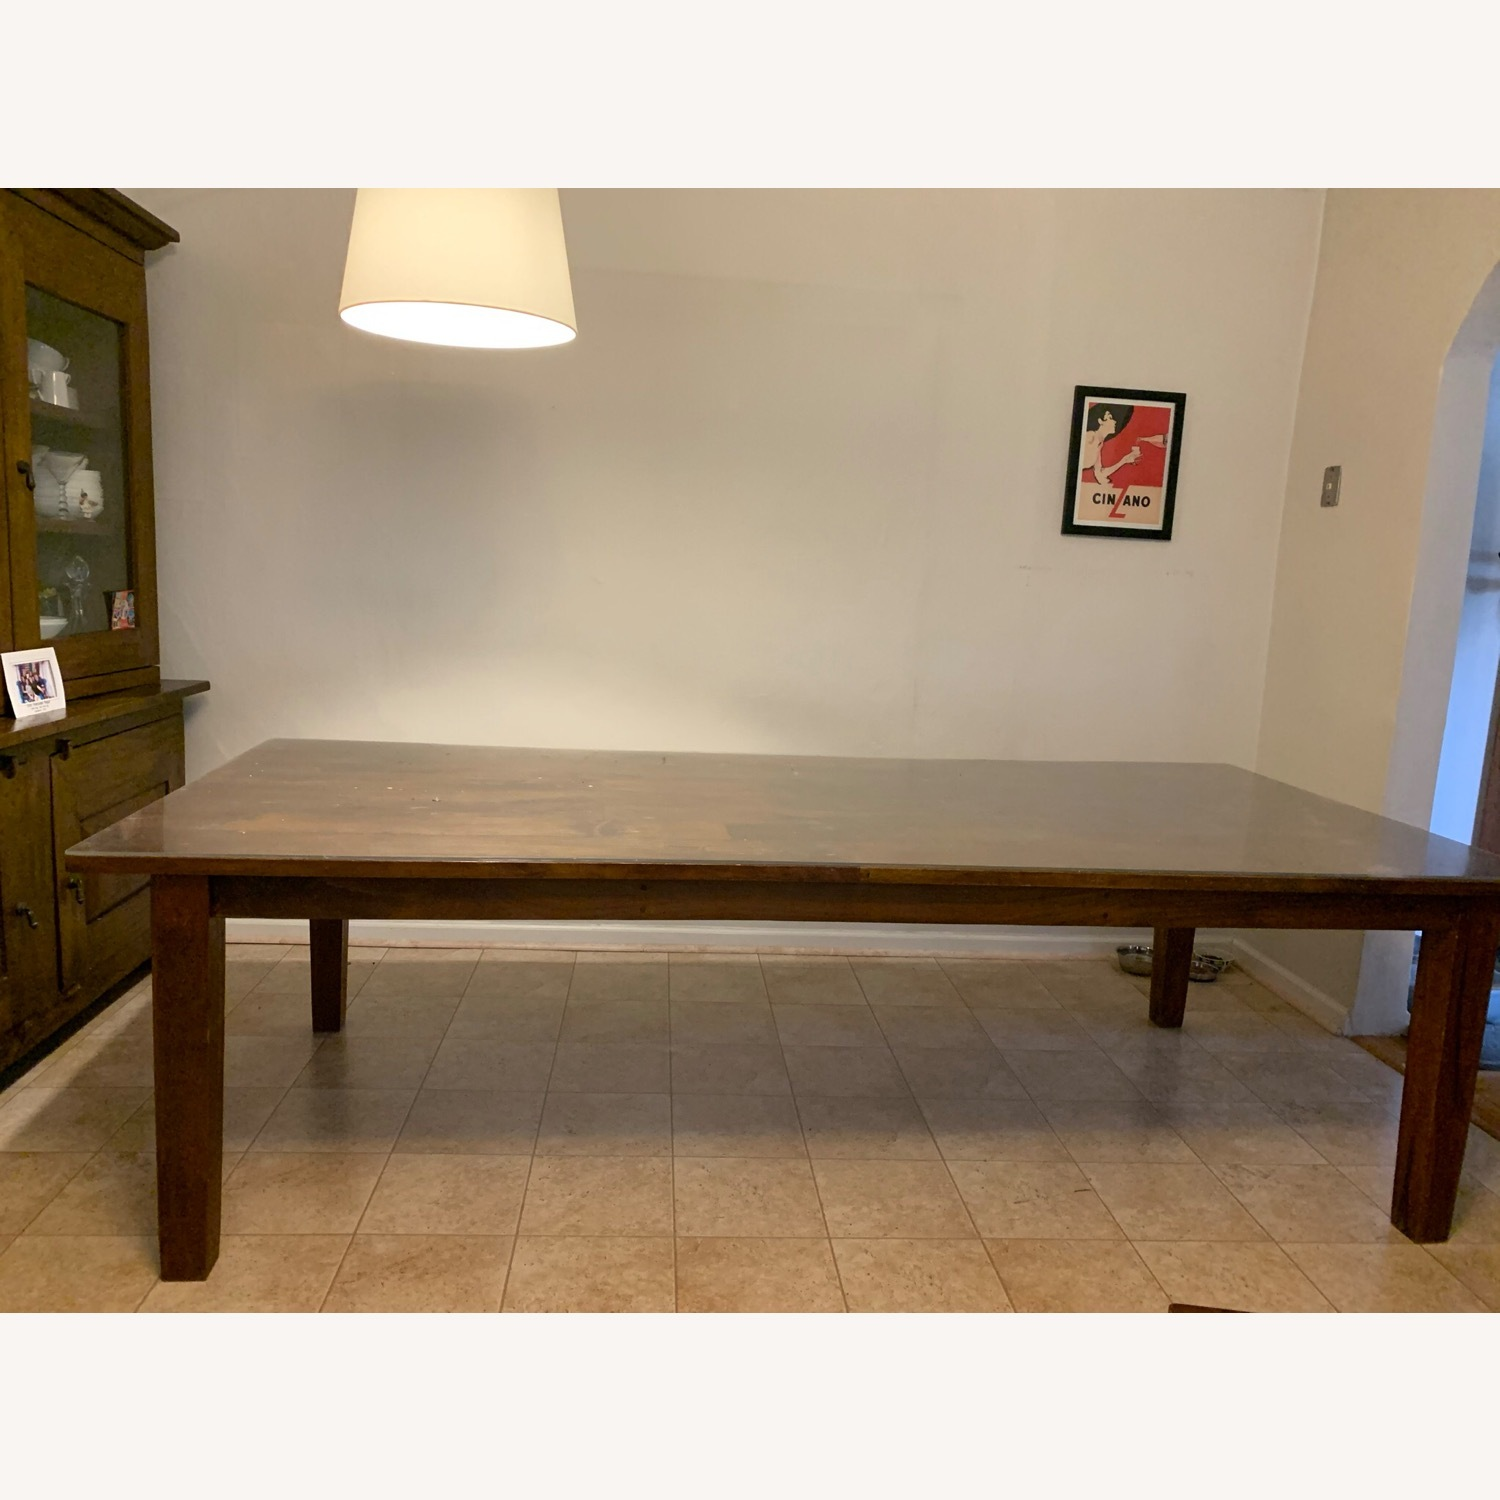 Crate and Barrel Basque Dining Table and 8 Chairs - image-2